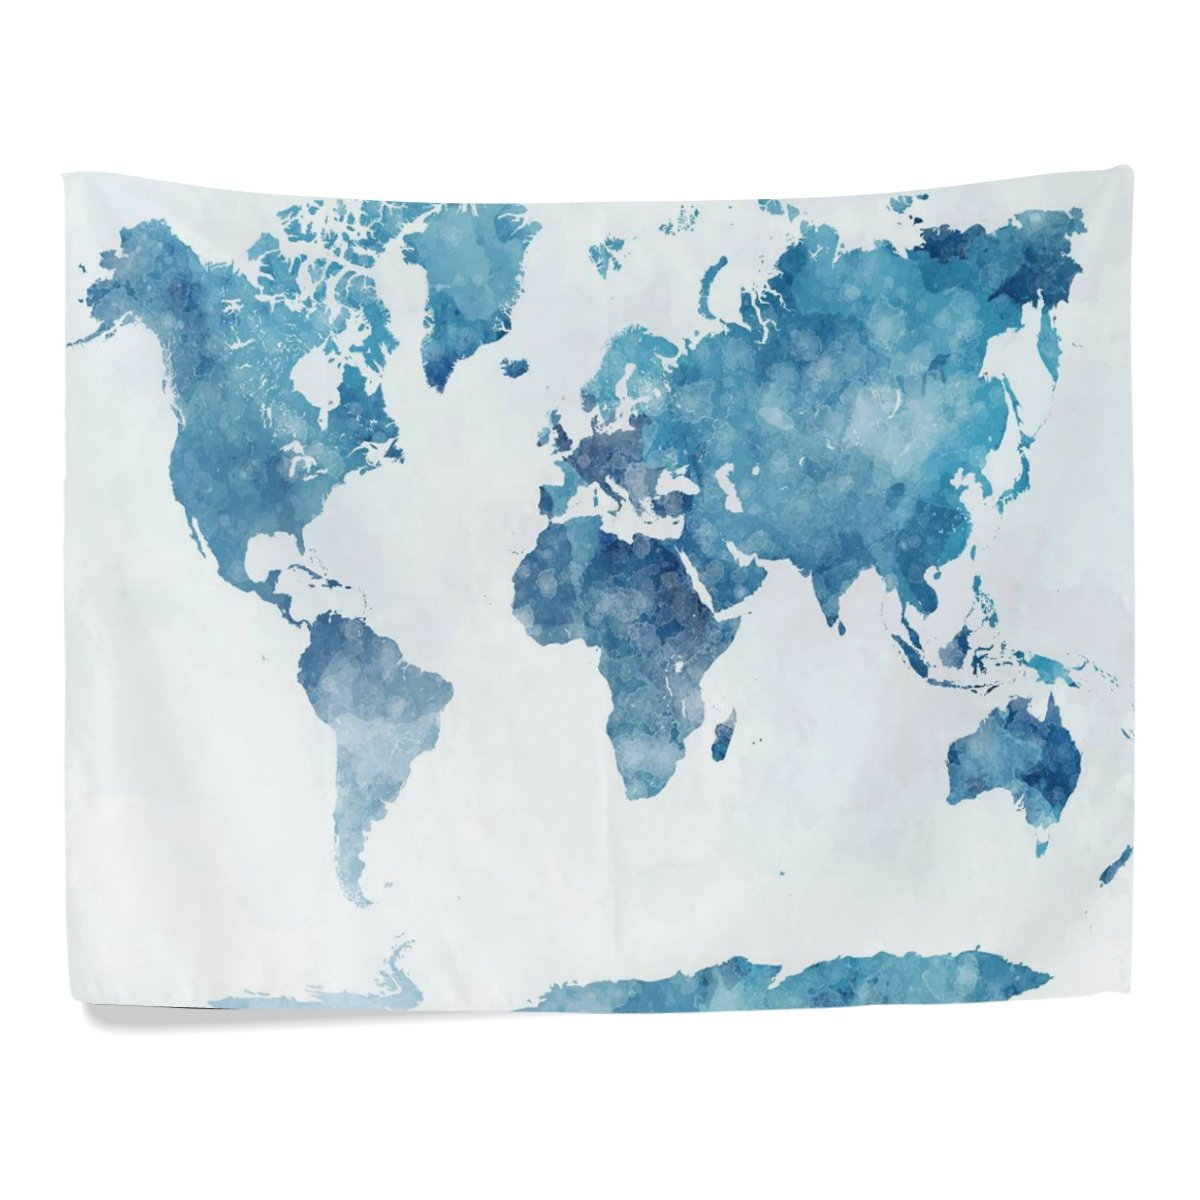 Amazon artpanda blue watercolor world map tapestry abstract amazon artpanda blue watercolor world map tapestry abstract splatter painting wall hanging art for living room bedroom dorm decor 60 x 40 inch home gumiabroncs Image collections